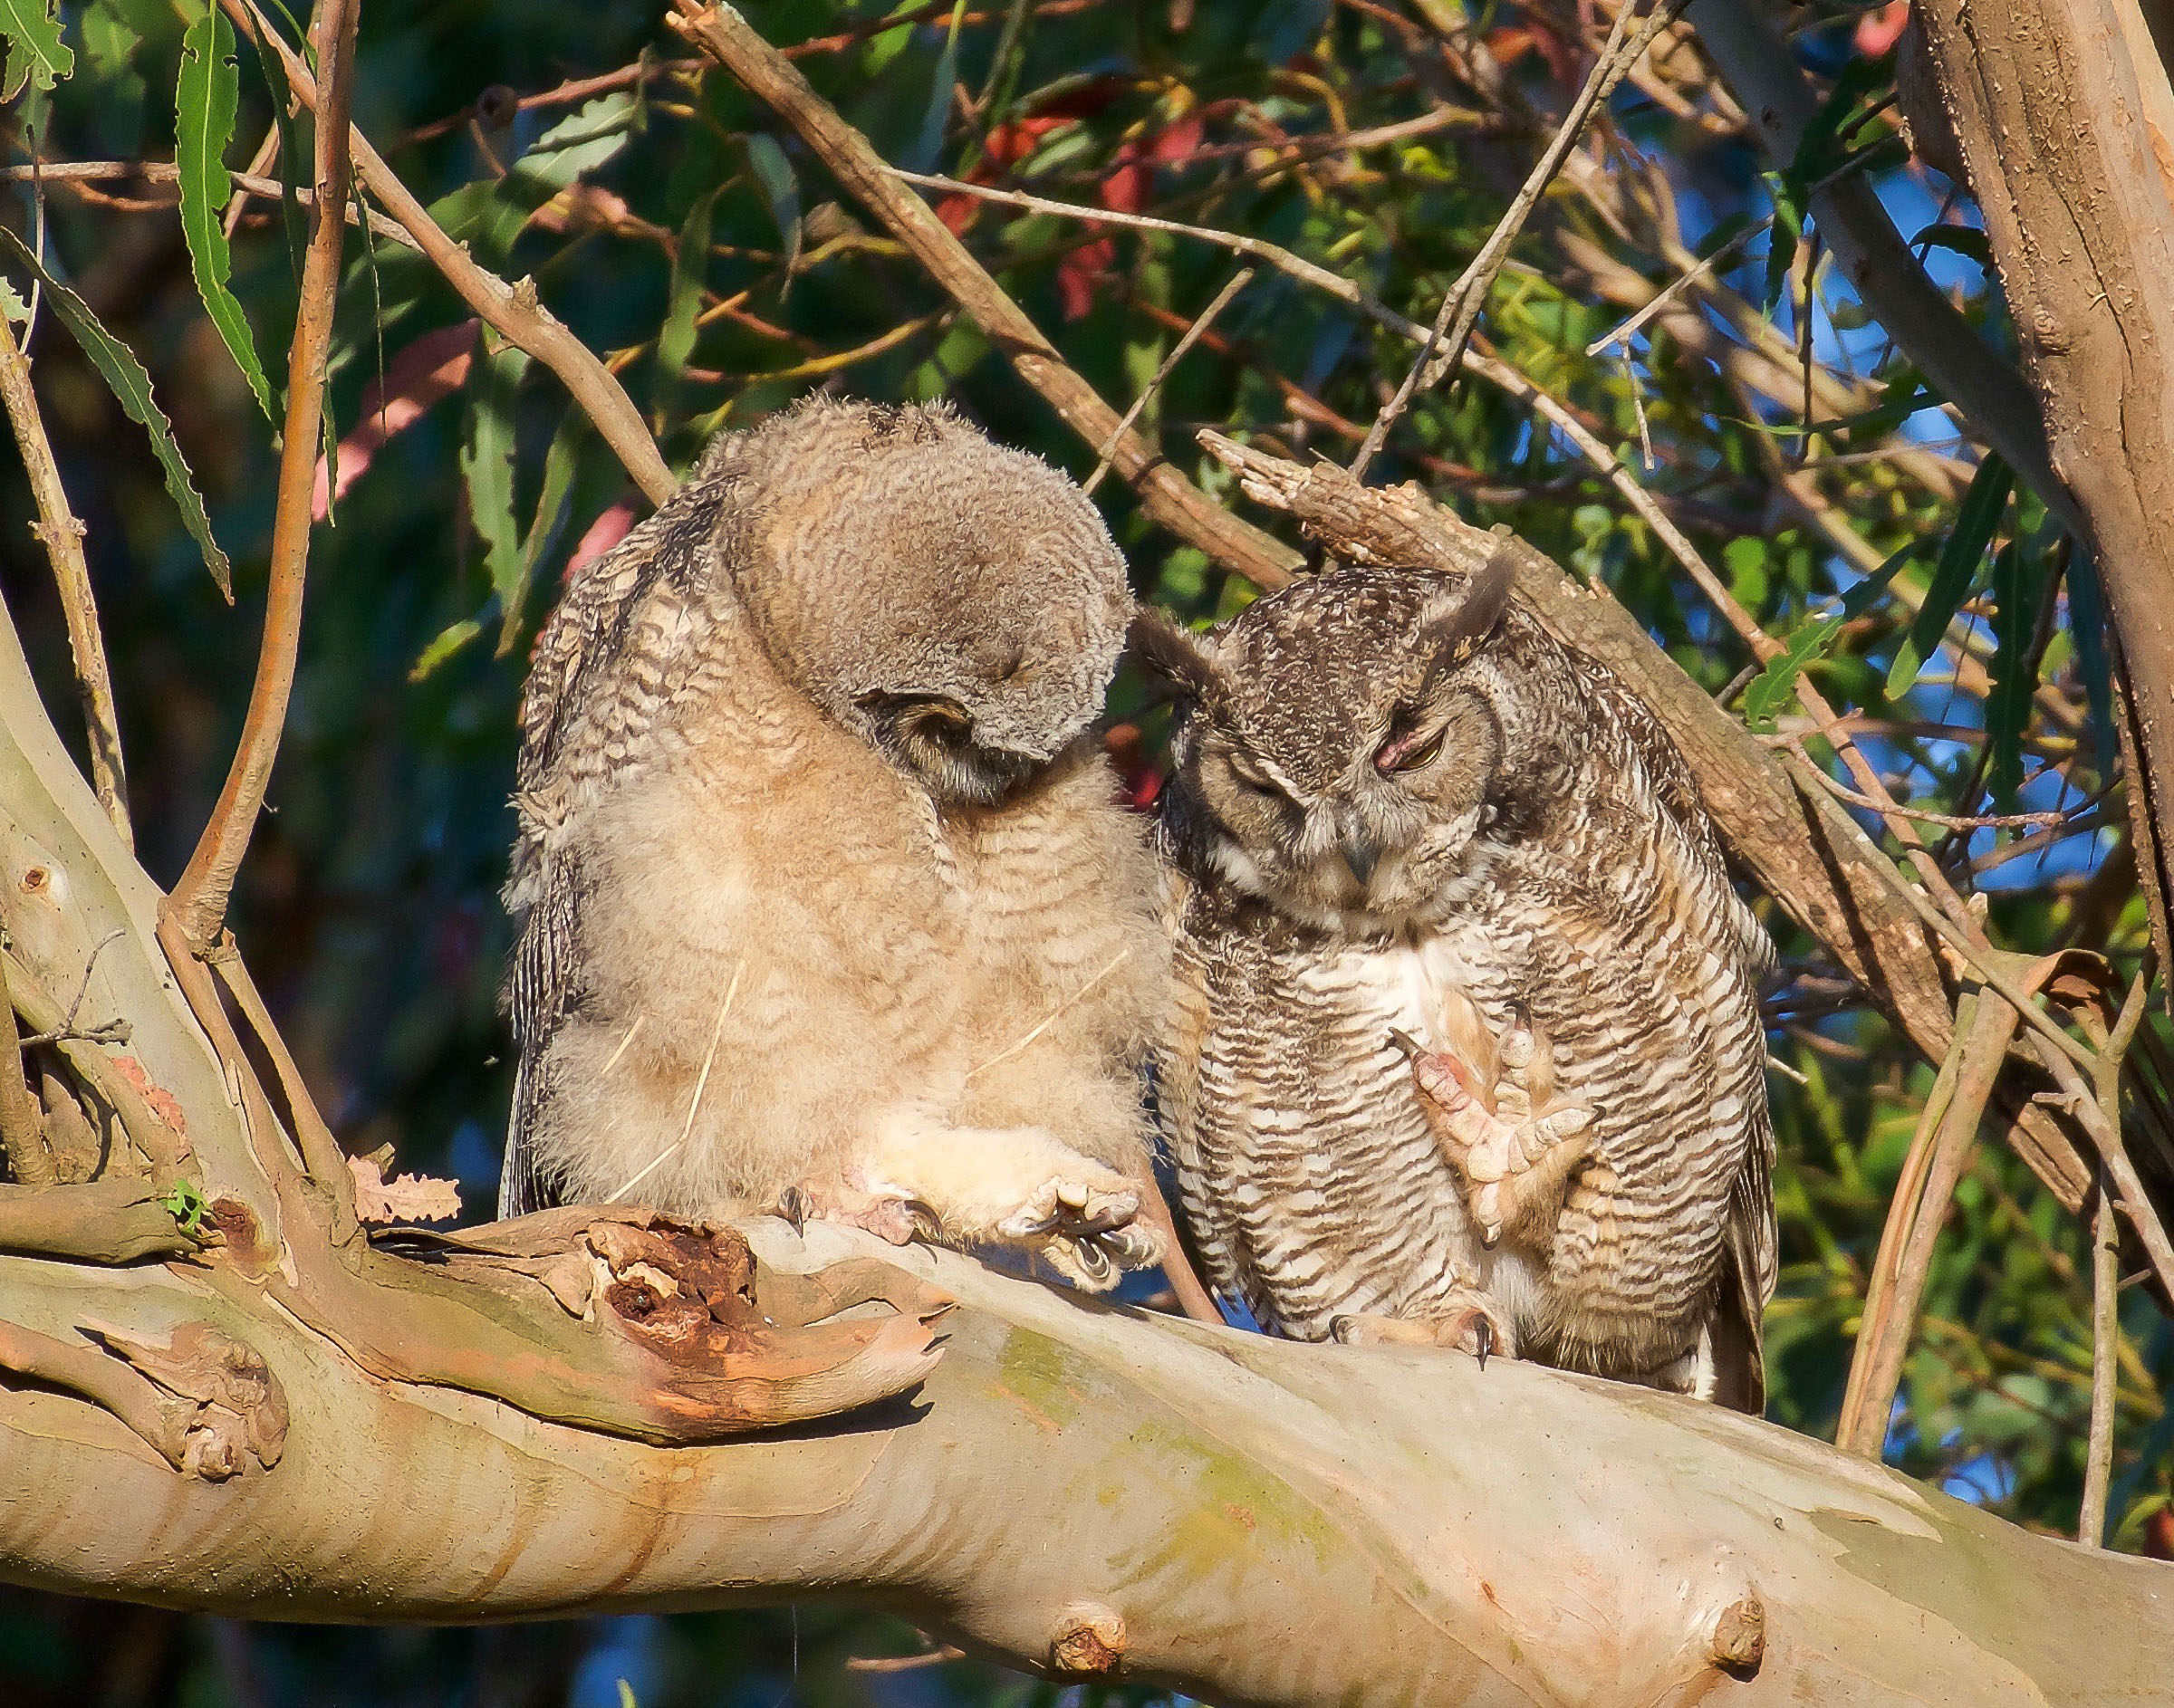 mother-owl-and-owlet-on-branch-grooming-3.jpg